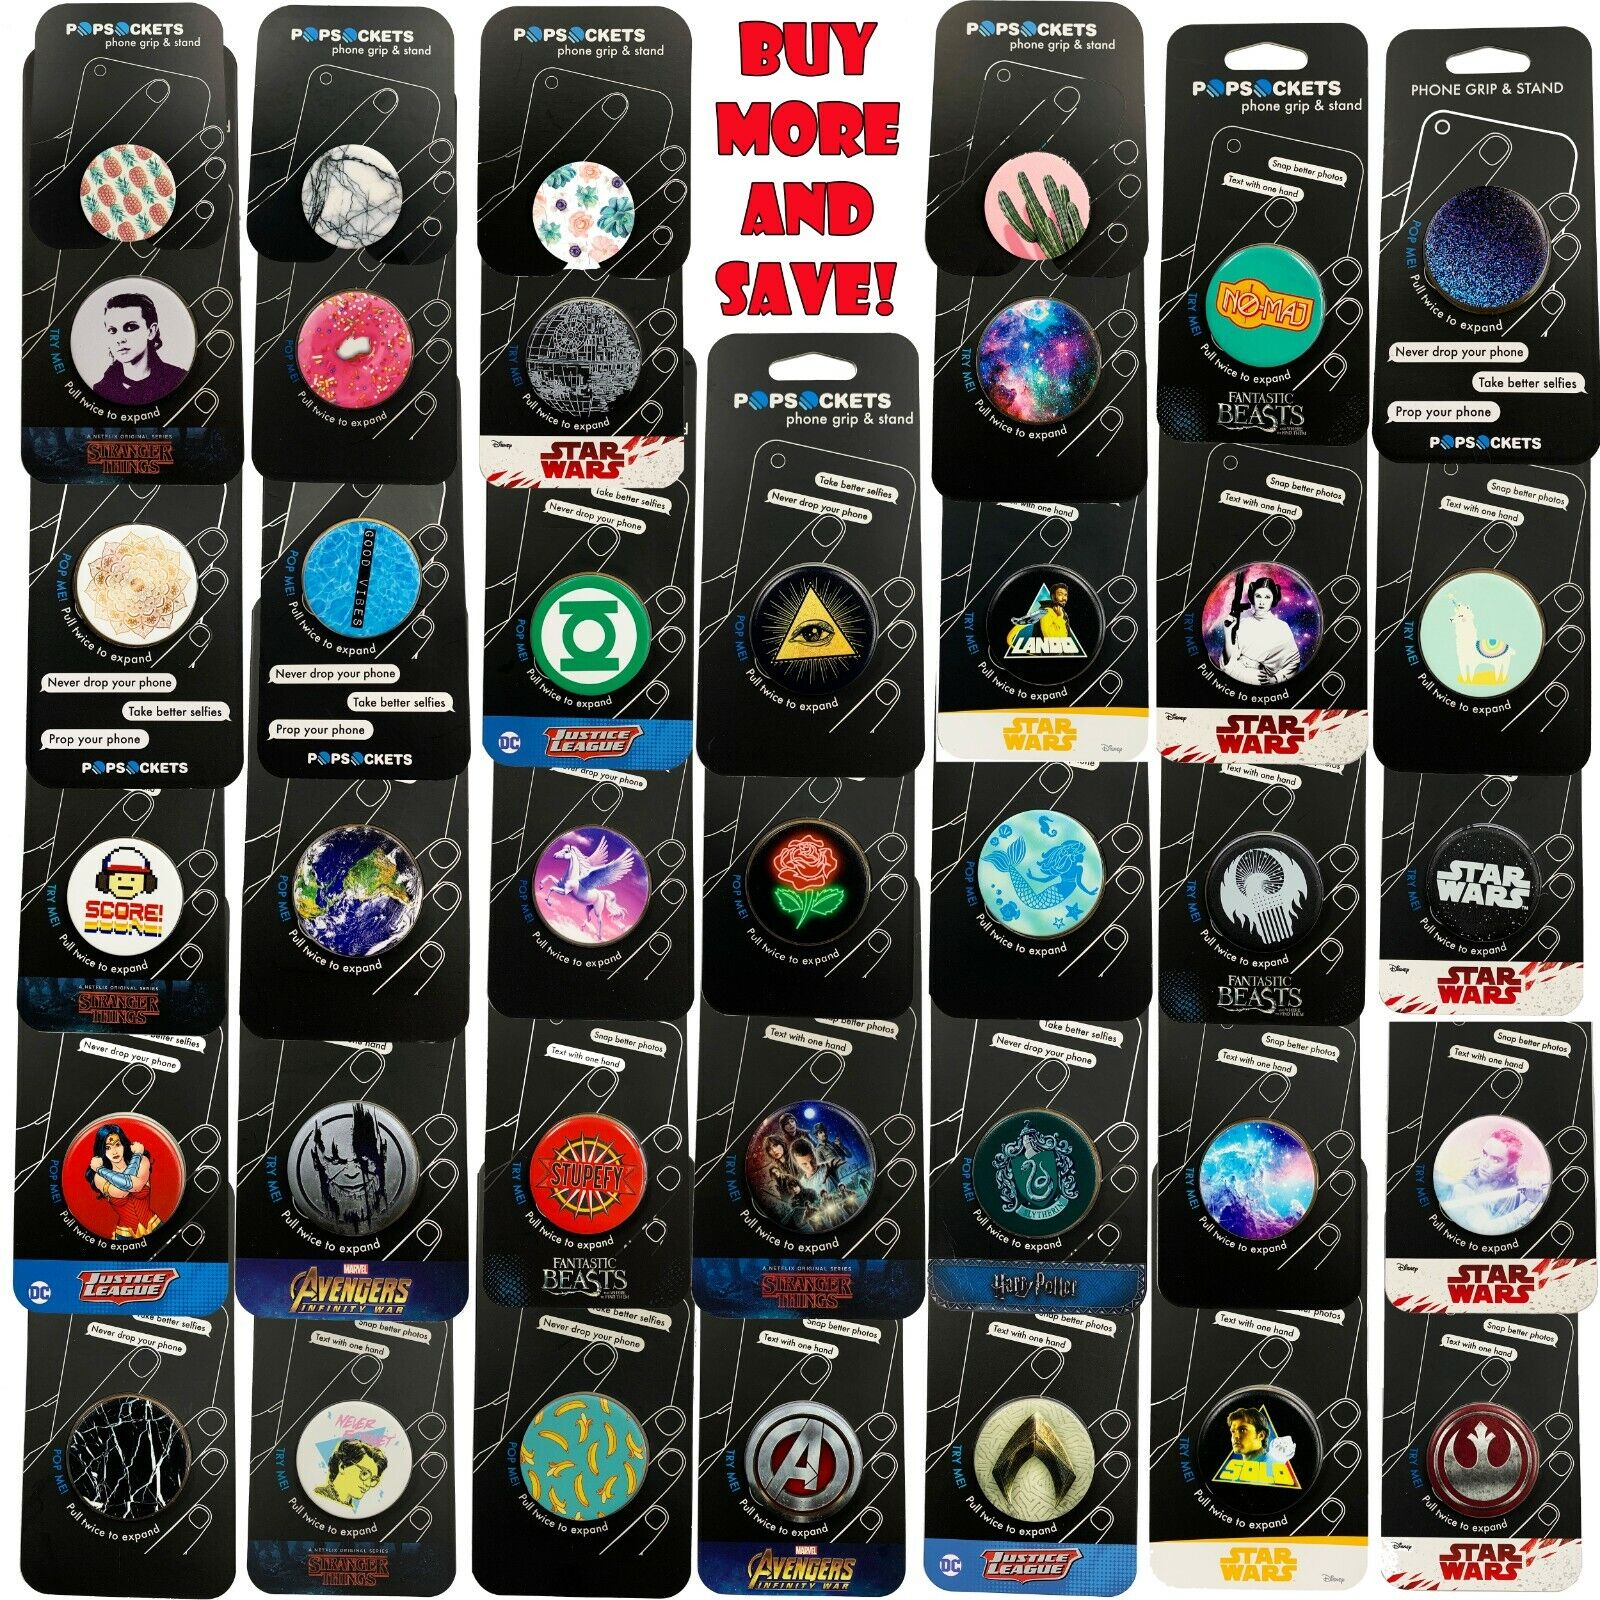 Popsockets Universal Holder Pop Socket